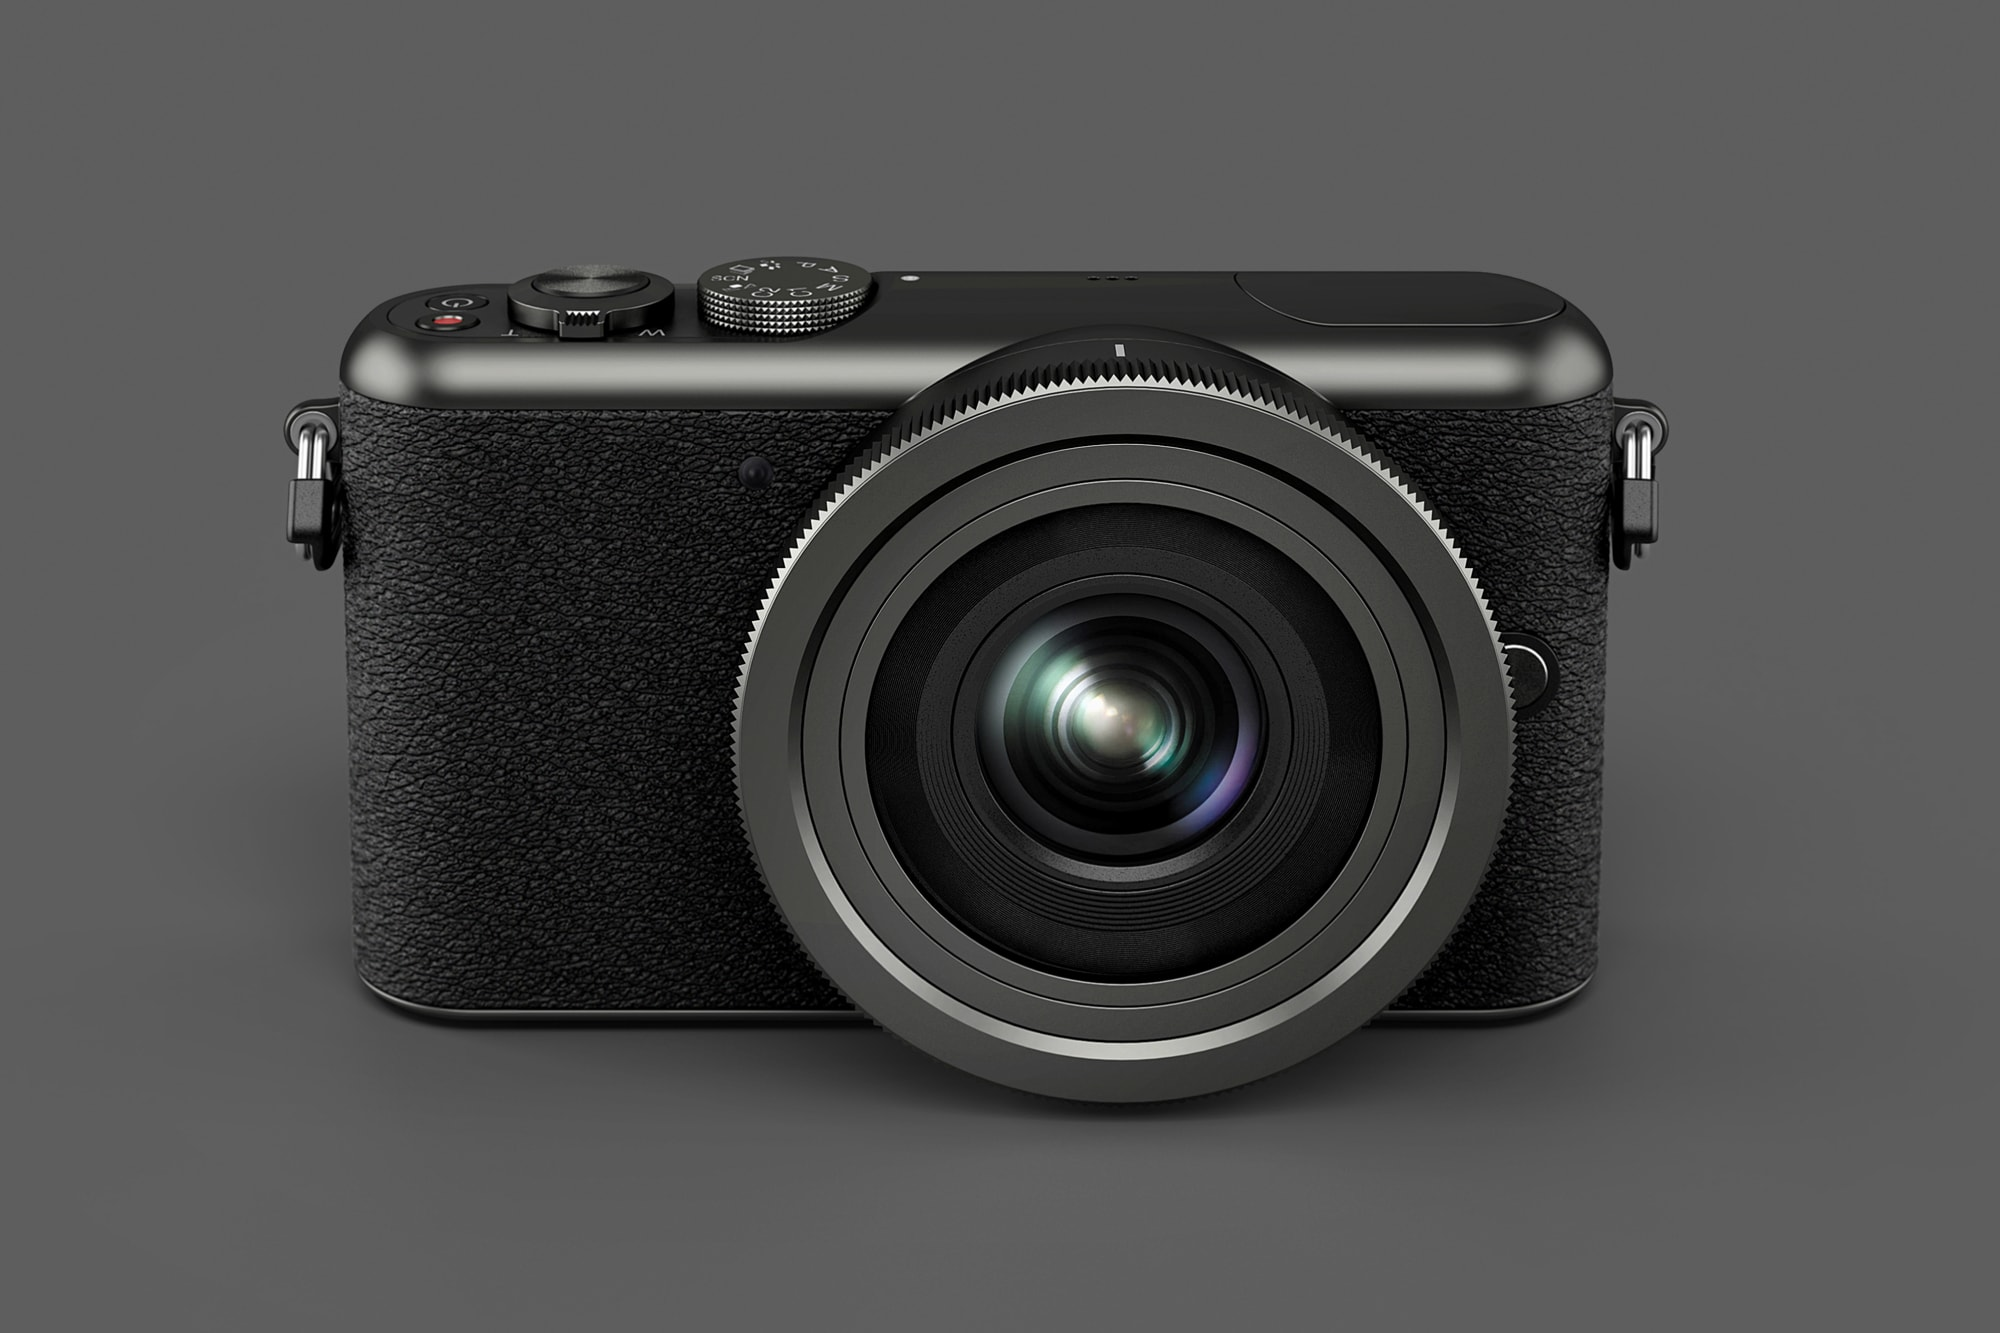 Front view of the Segment camera in black on a dark grey background.